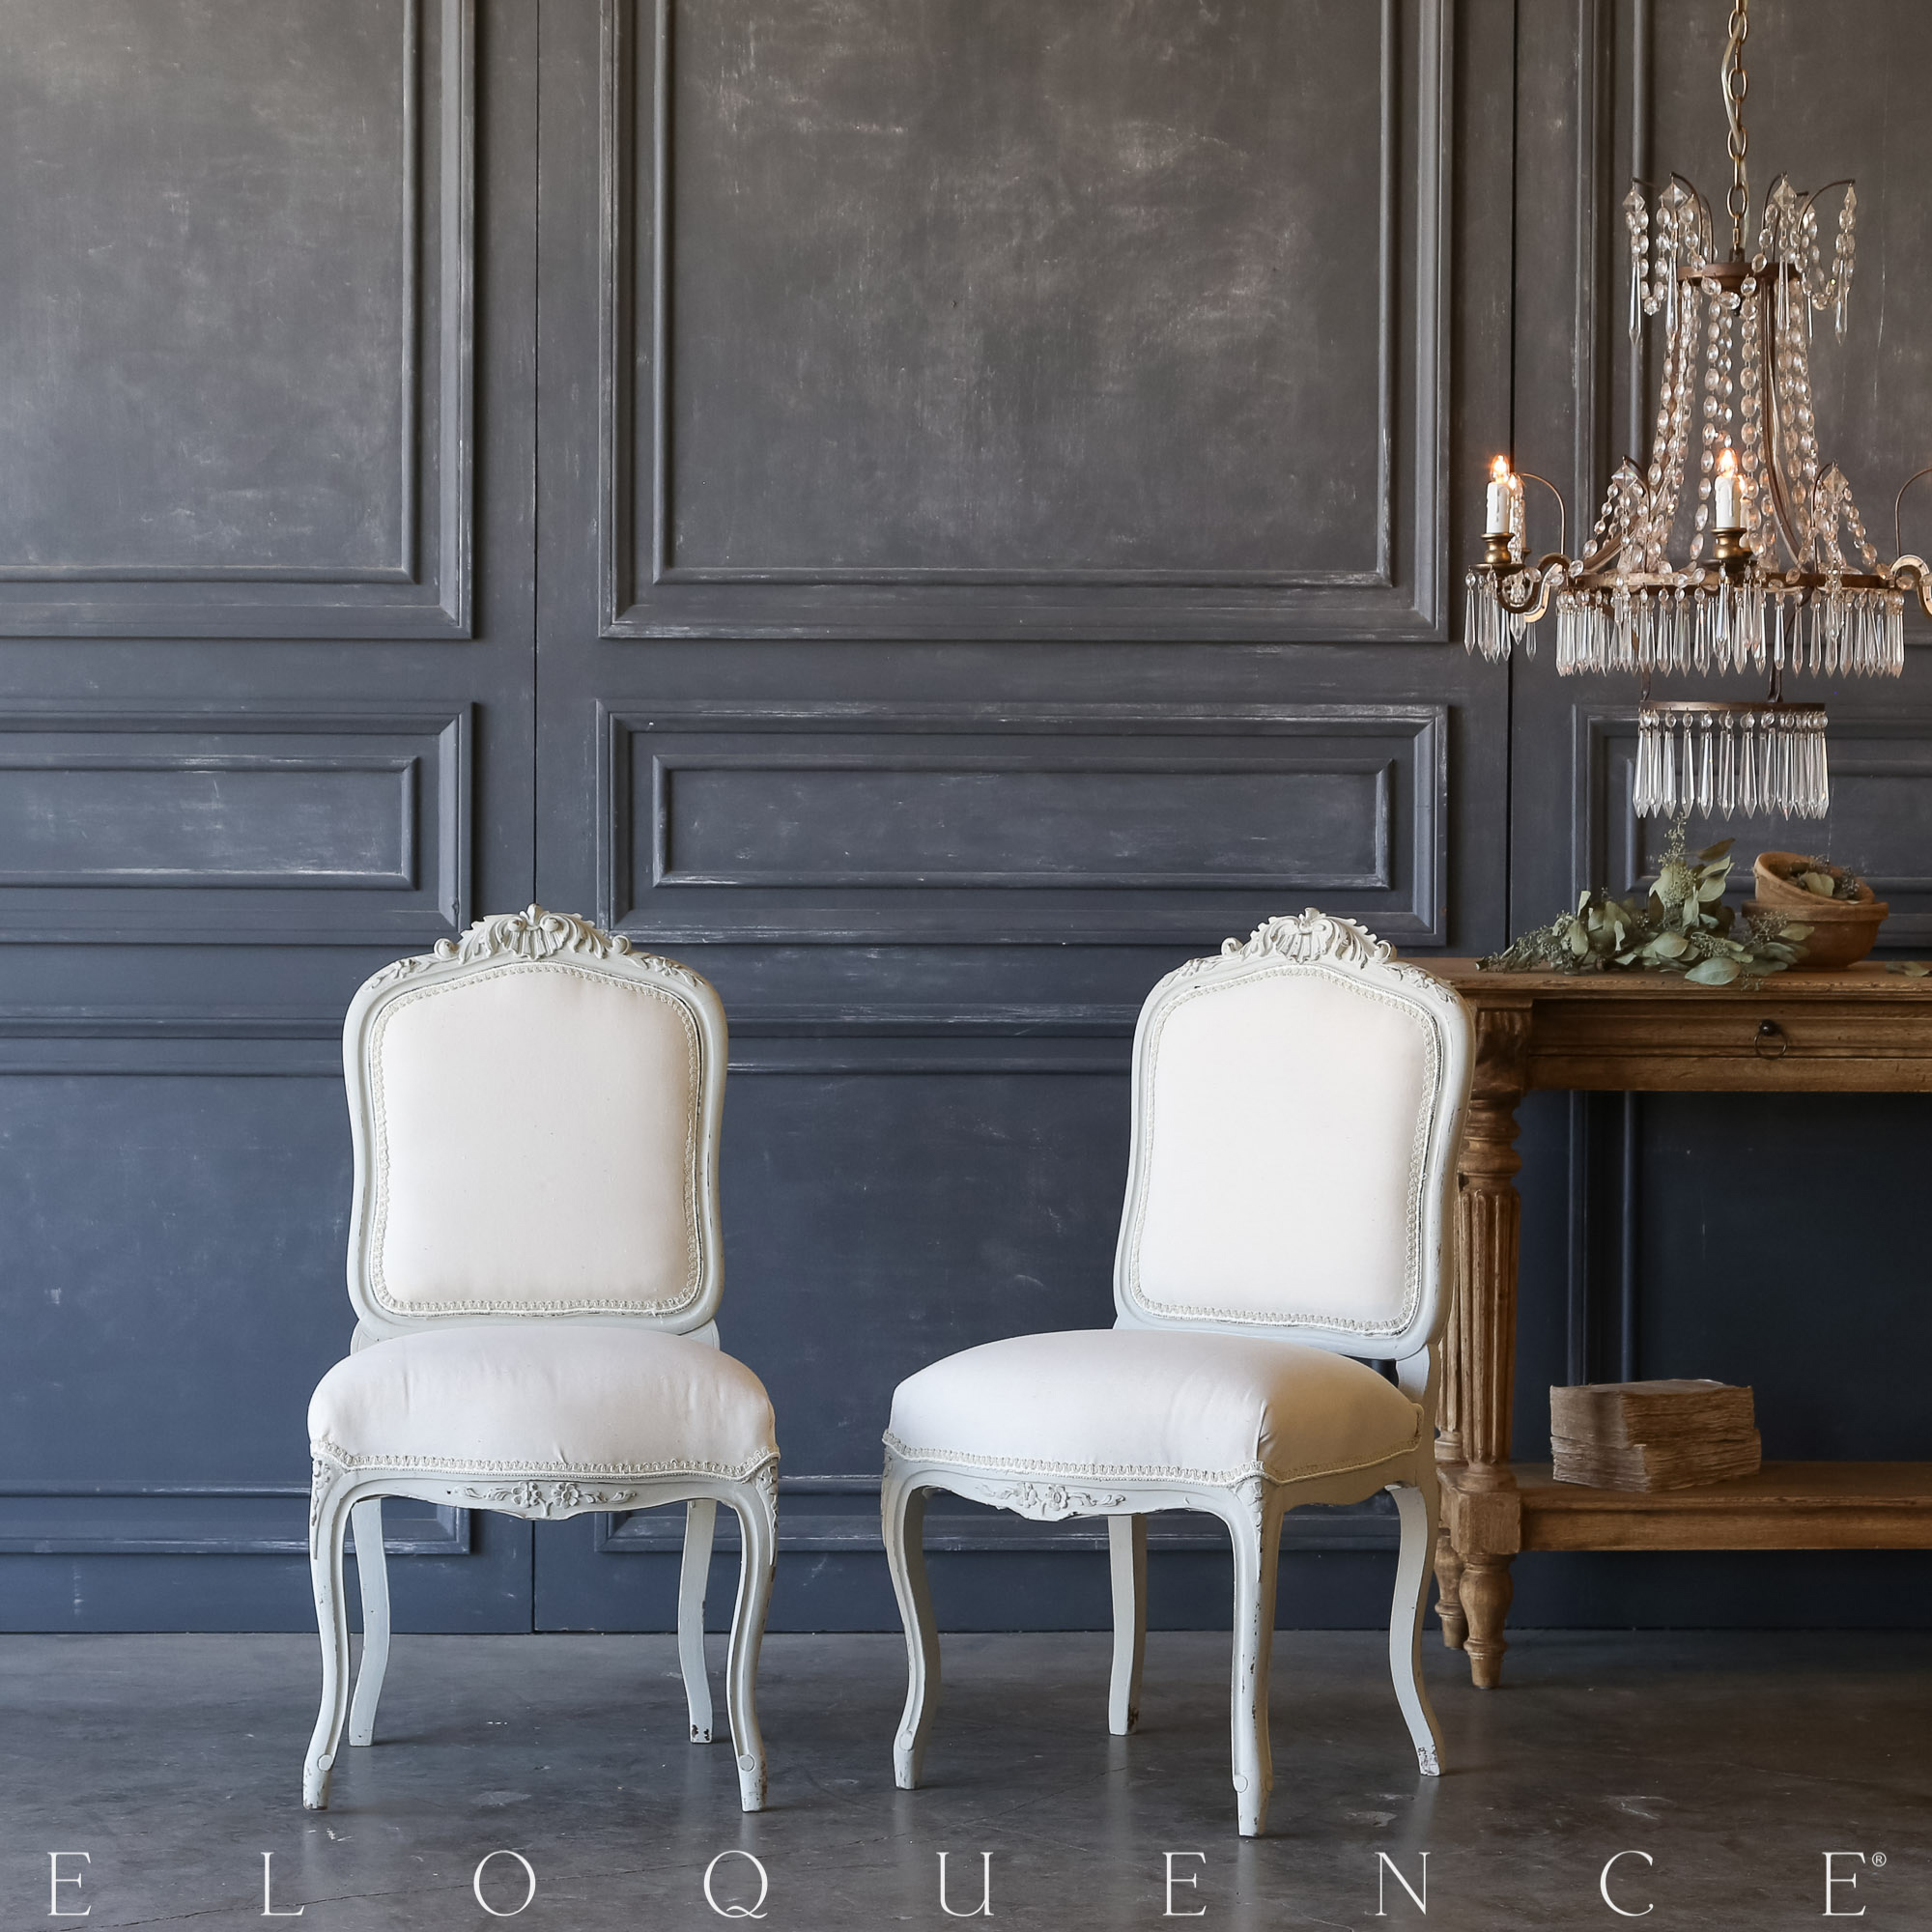 Eloquence® Pair of Vintage Rustic White Side Chairs: 1940